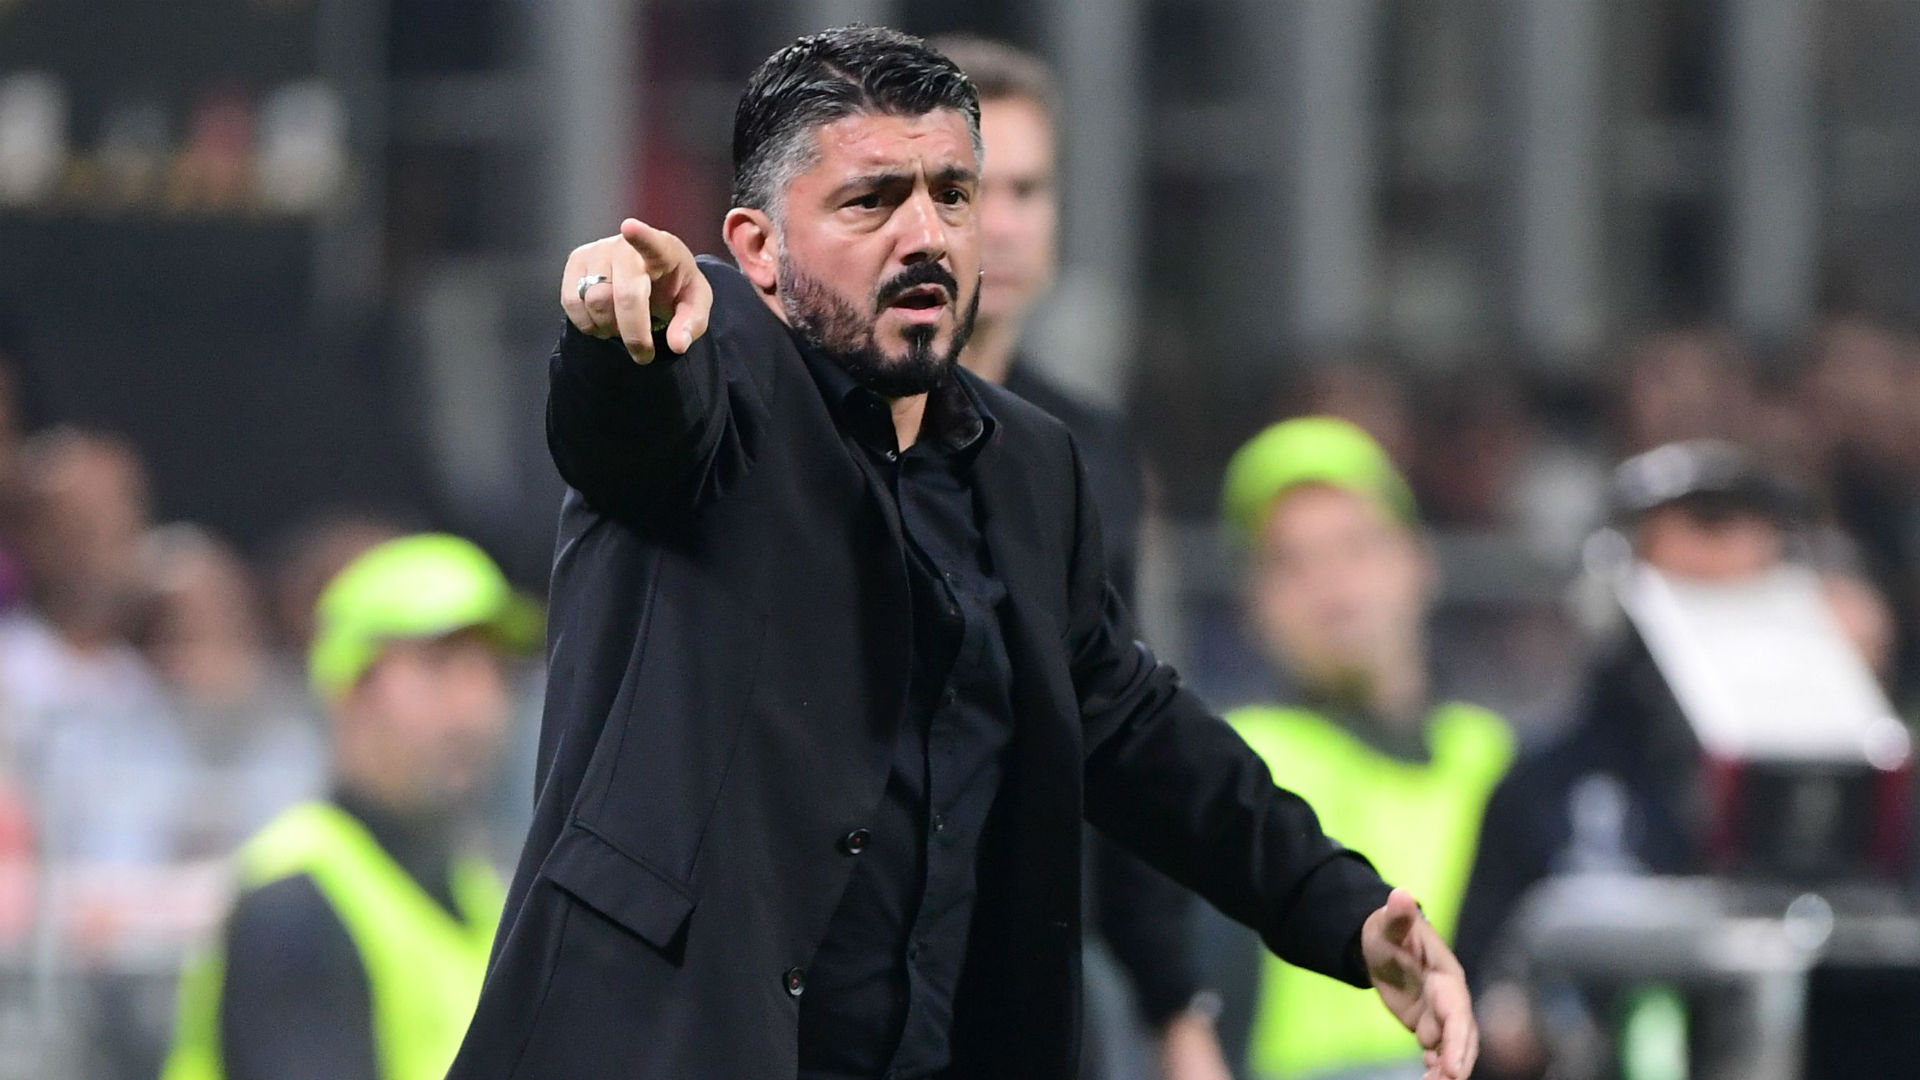 A day ago AC Milan coach Gattuso: Full strength line-up for Betis